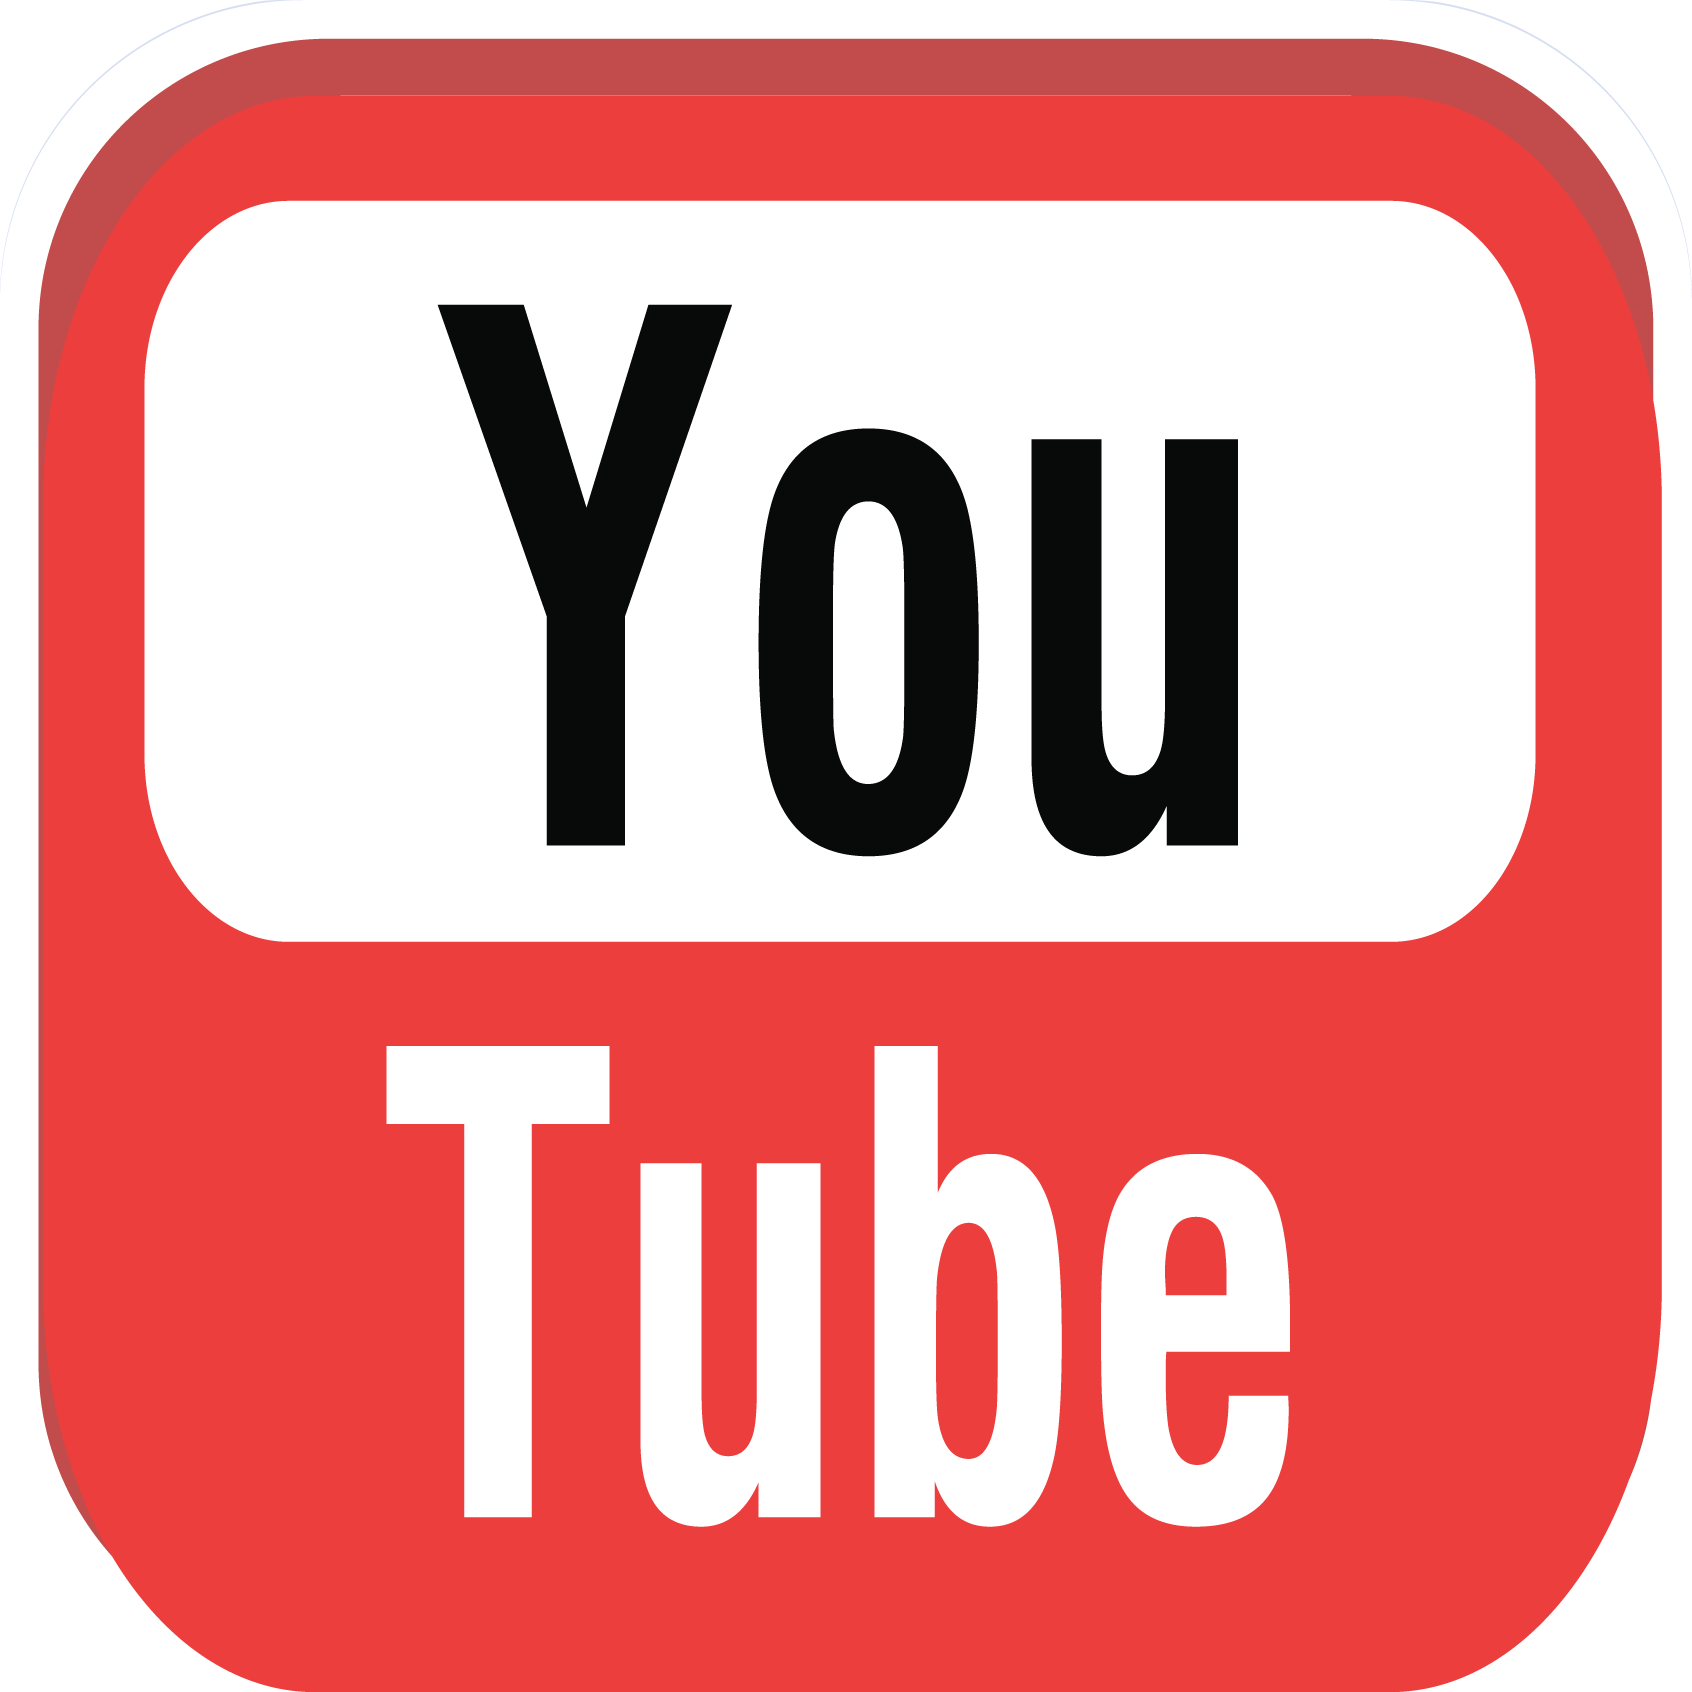 Download Youtube Free PNG photo images and clipart | FreePNGImg